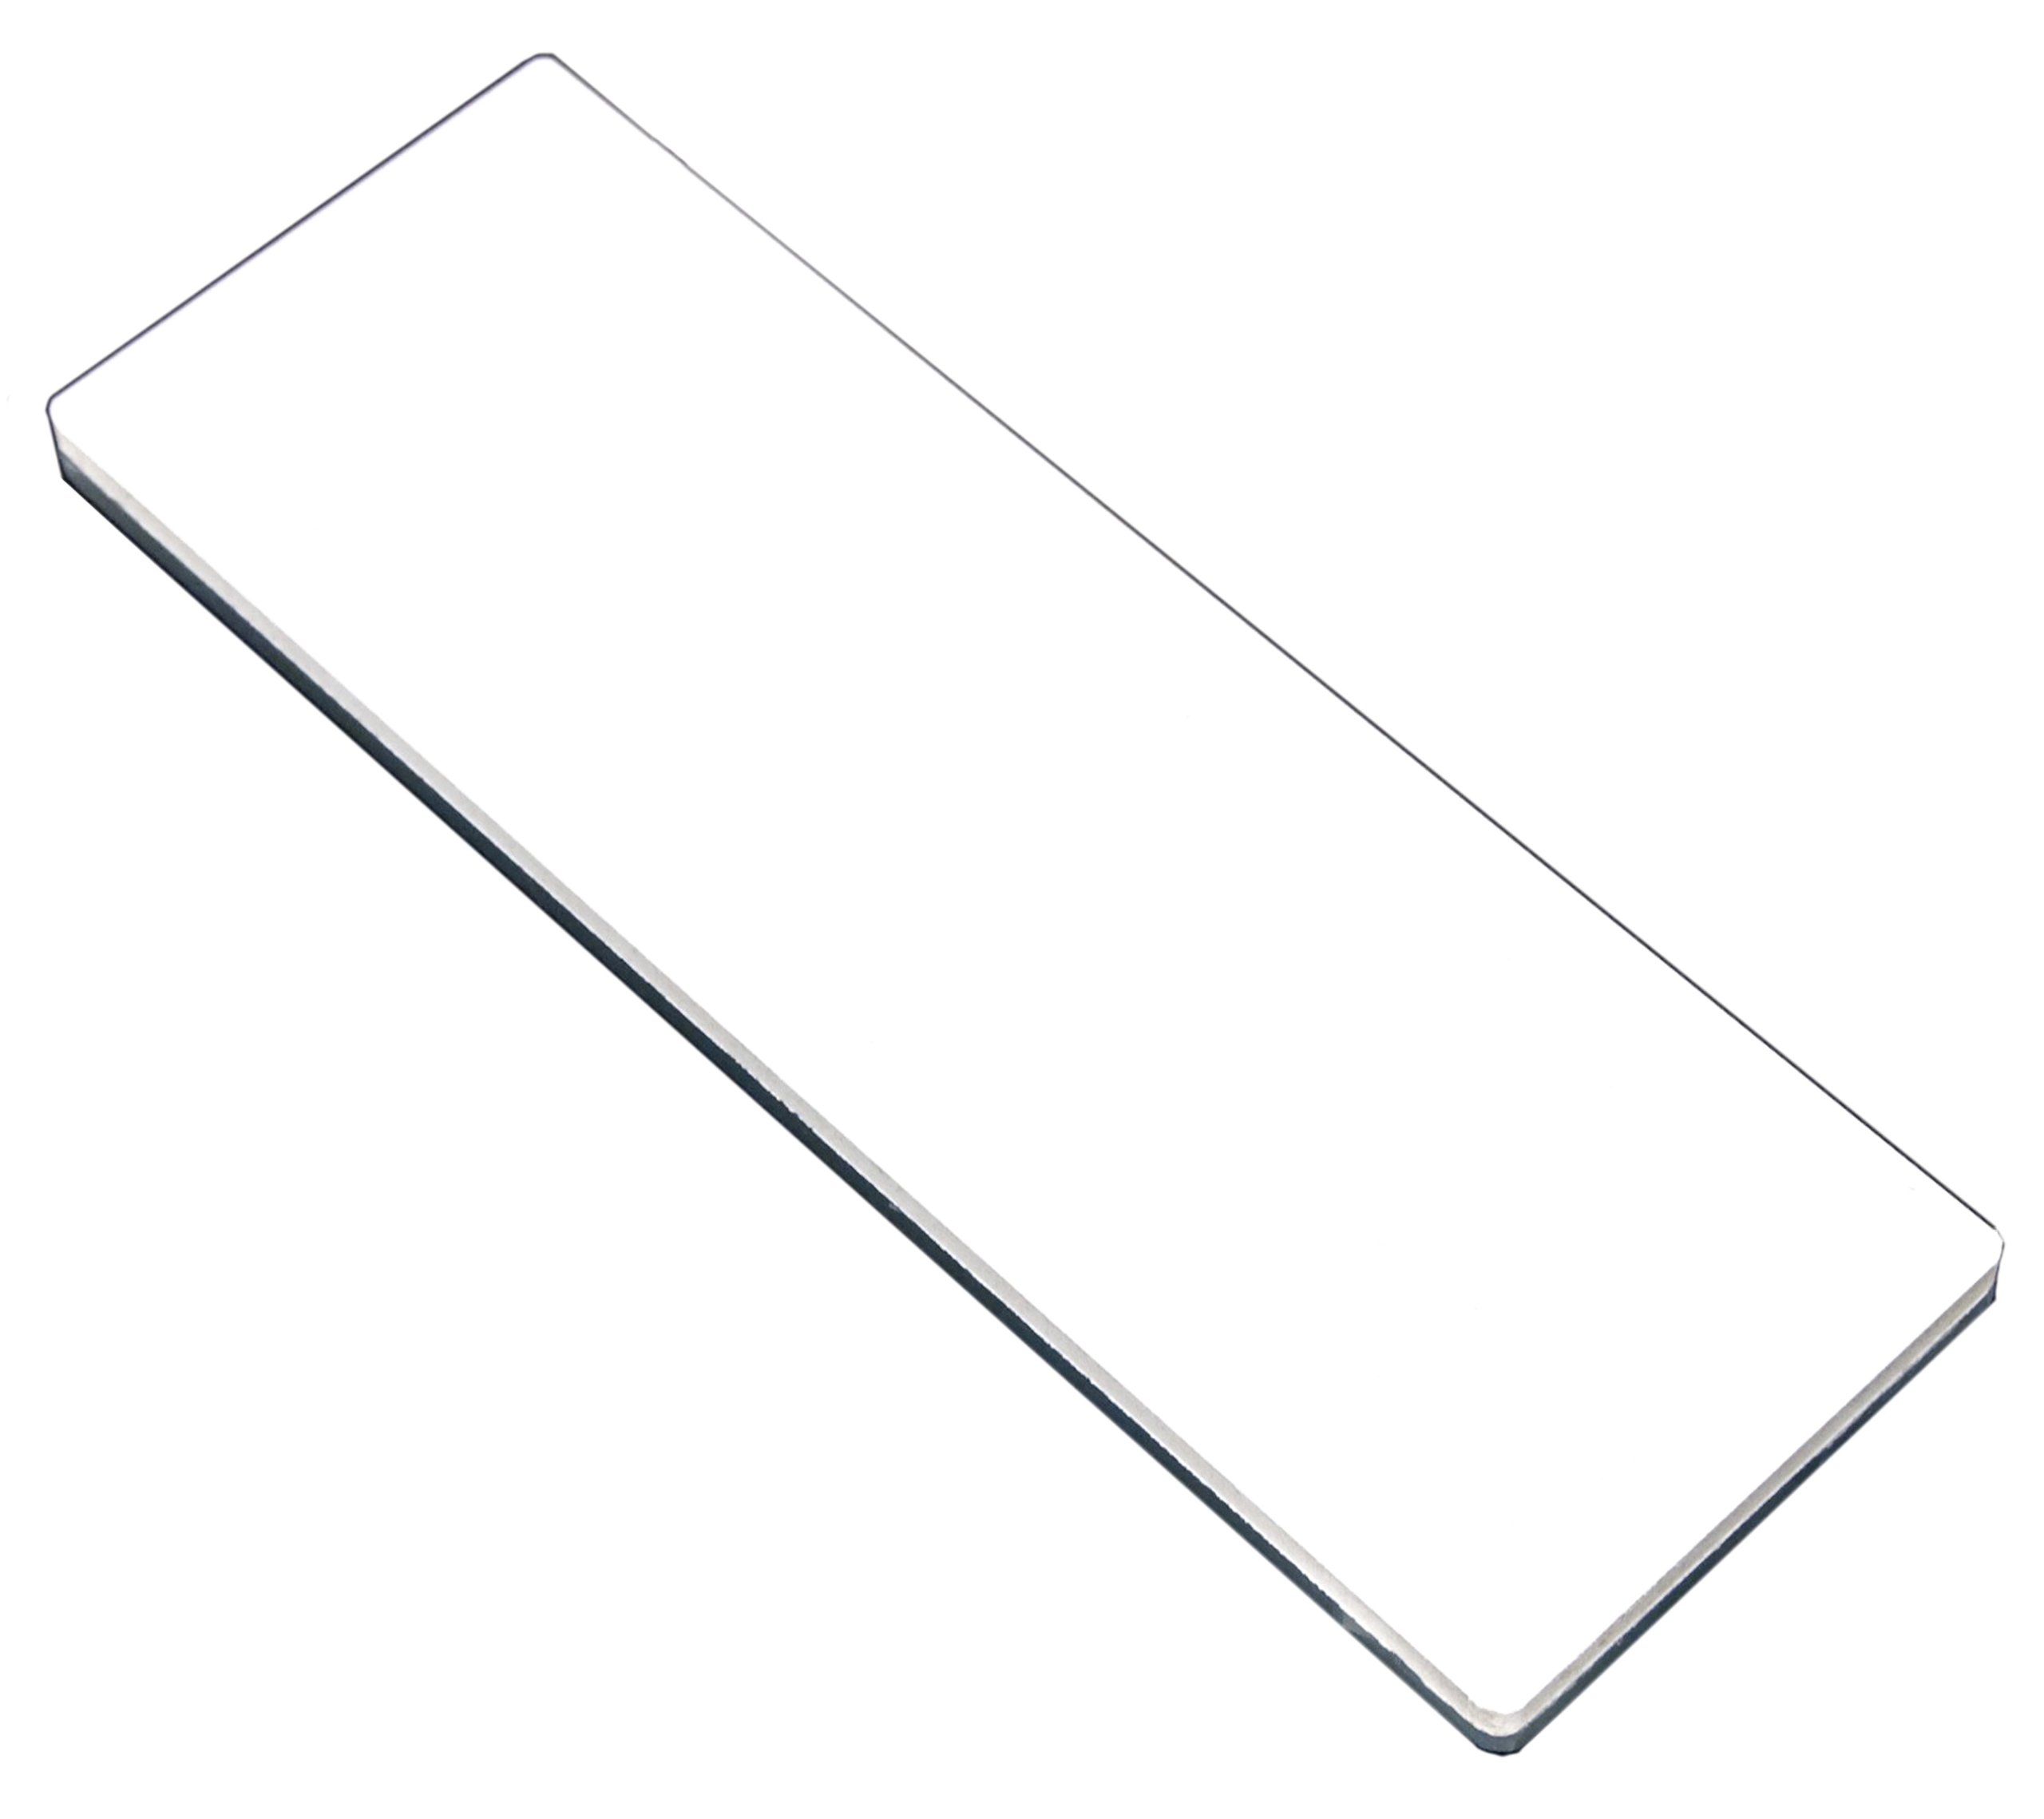 Shapton Glass Stone 1000 Grit 5mm by Shapton (Image #1)